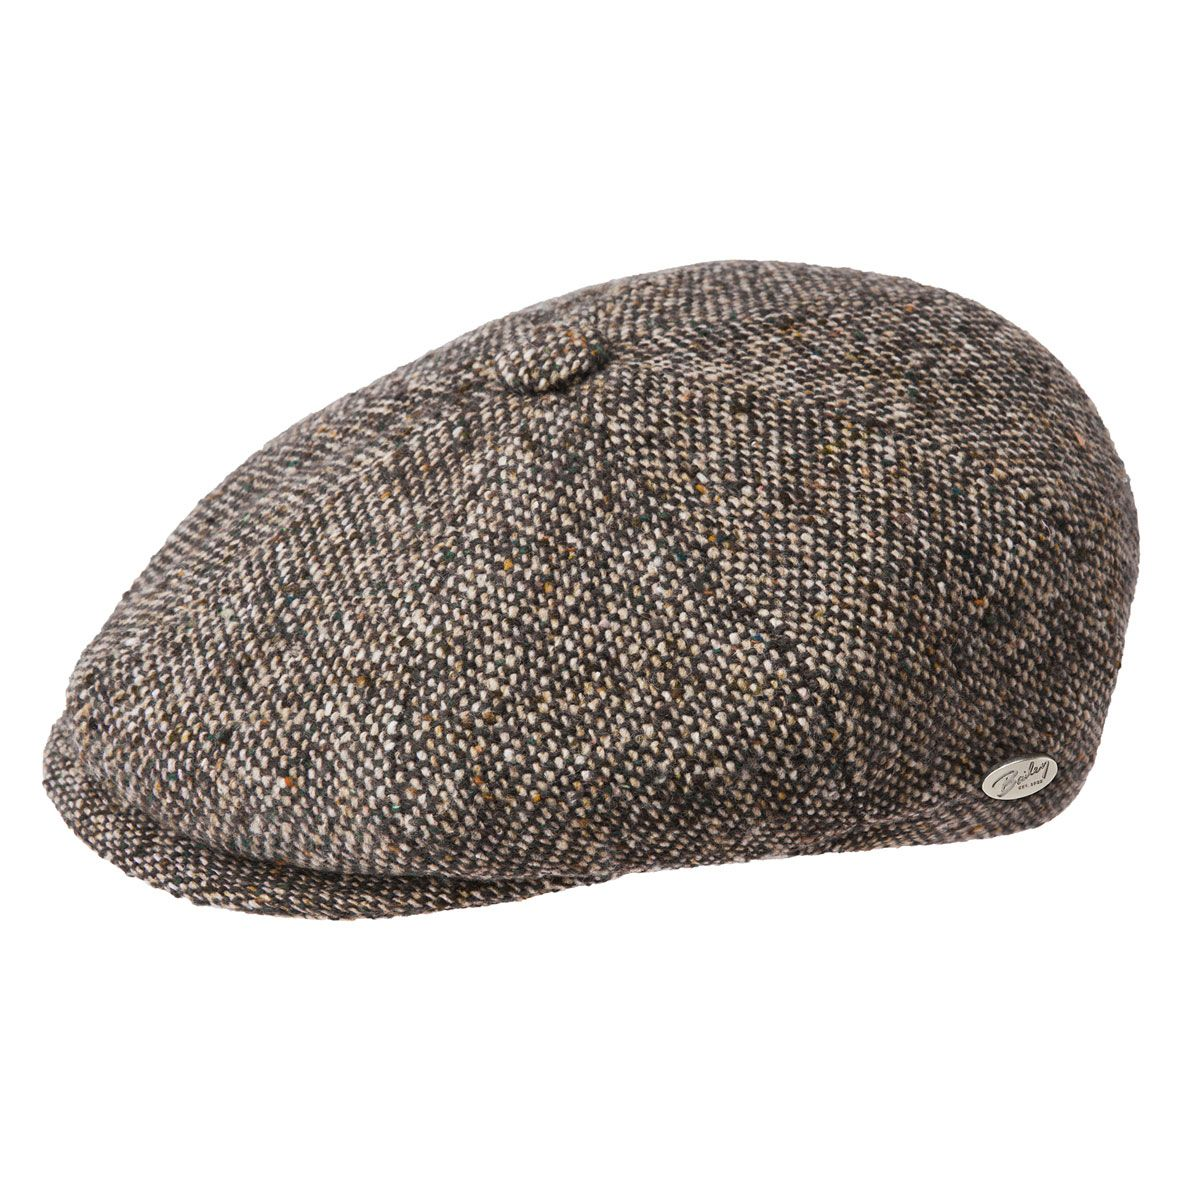 7bbe9b3a8fe Galvin Tweed 8-panel Cap by Bailey – Levine Hat Co.